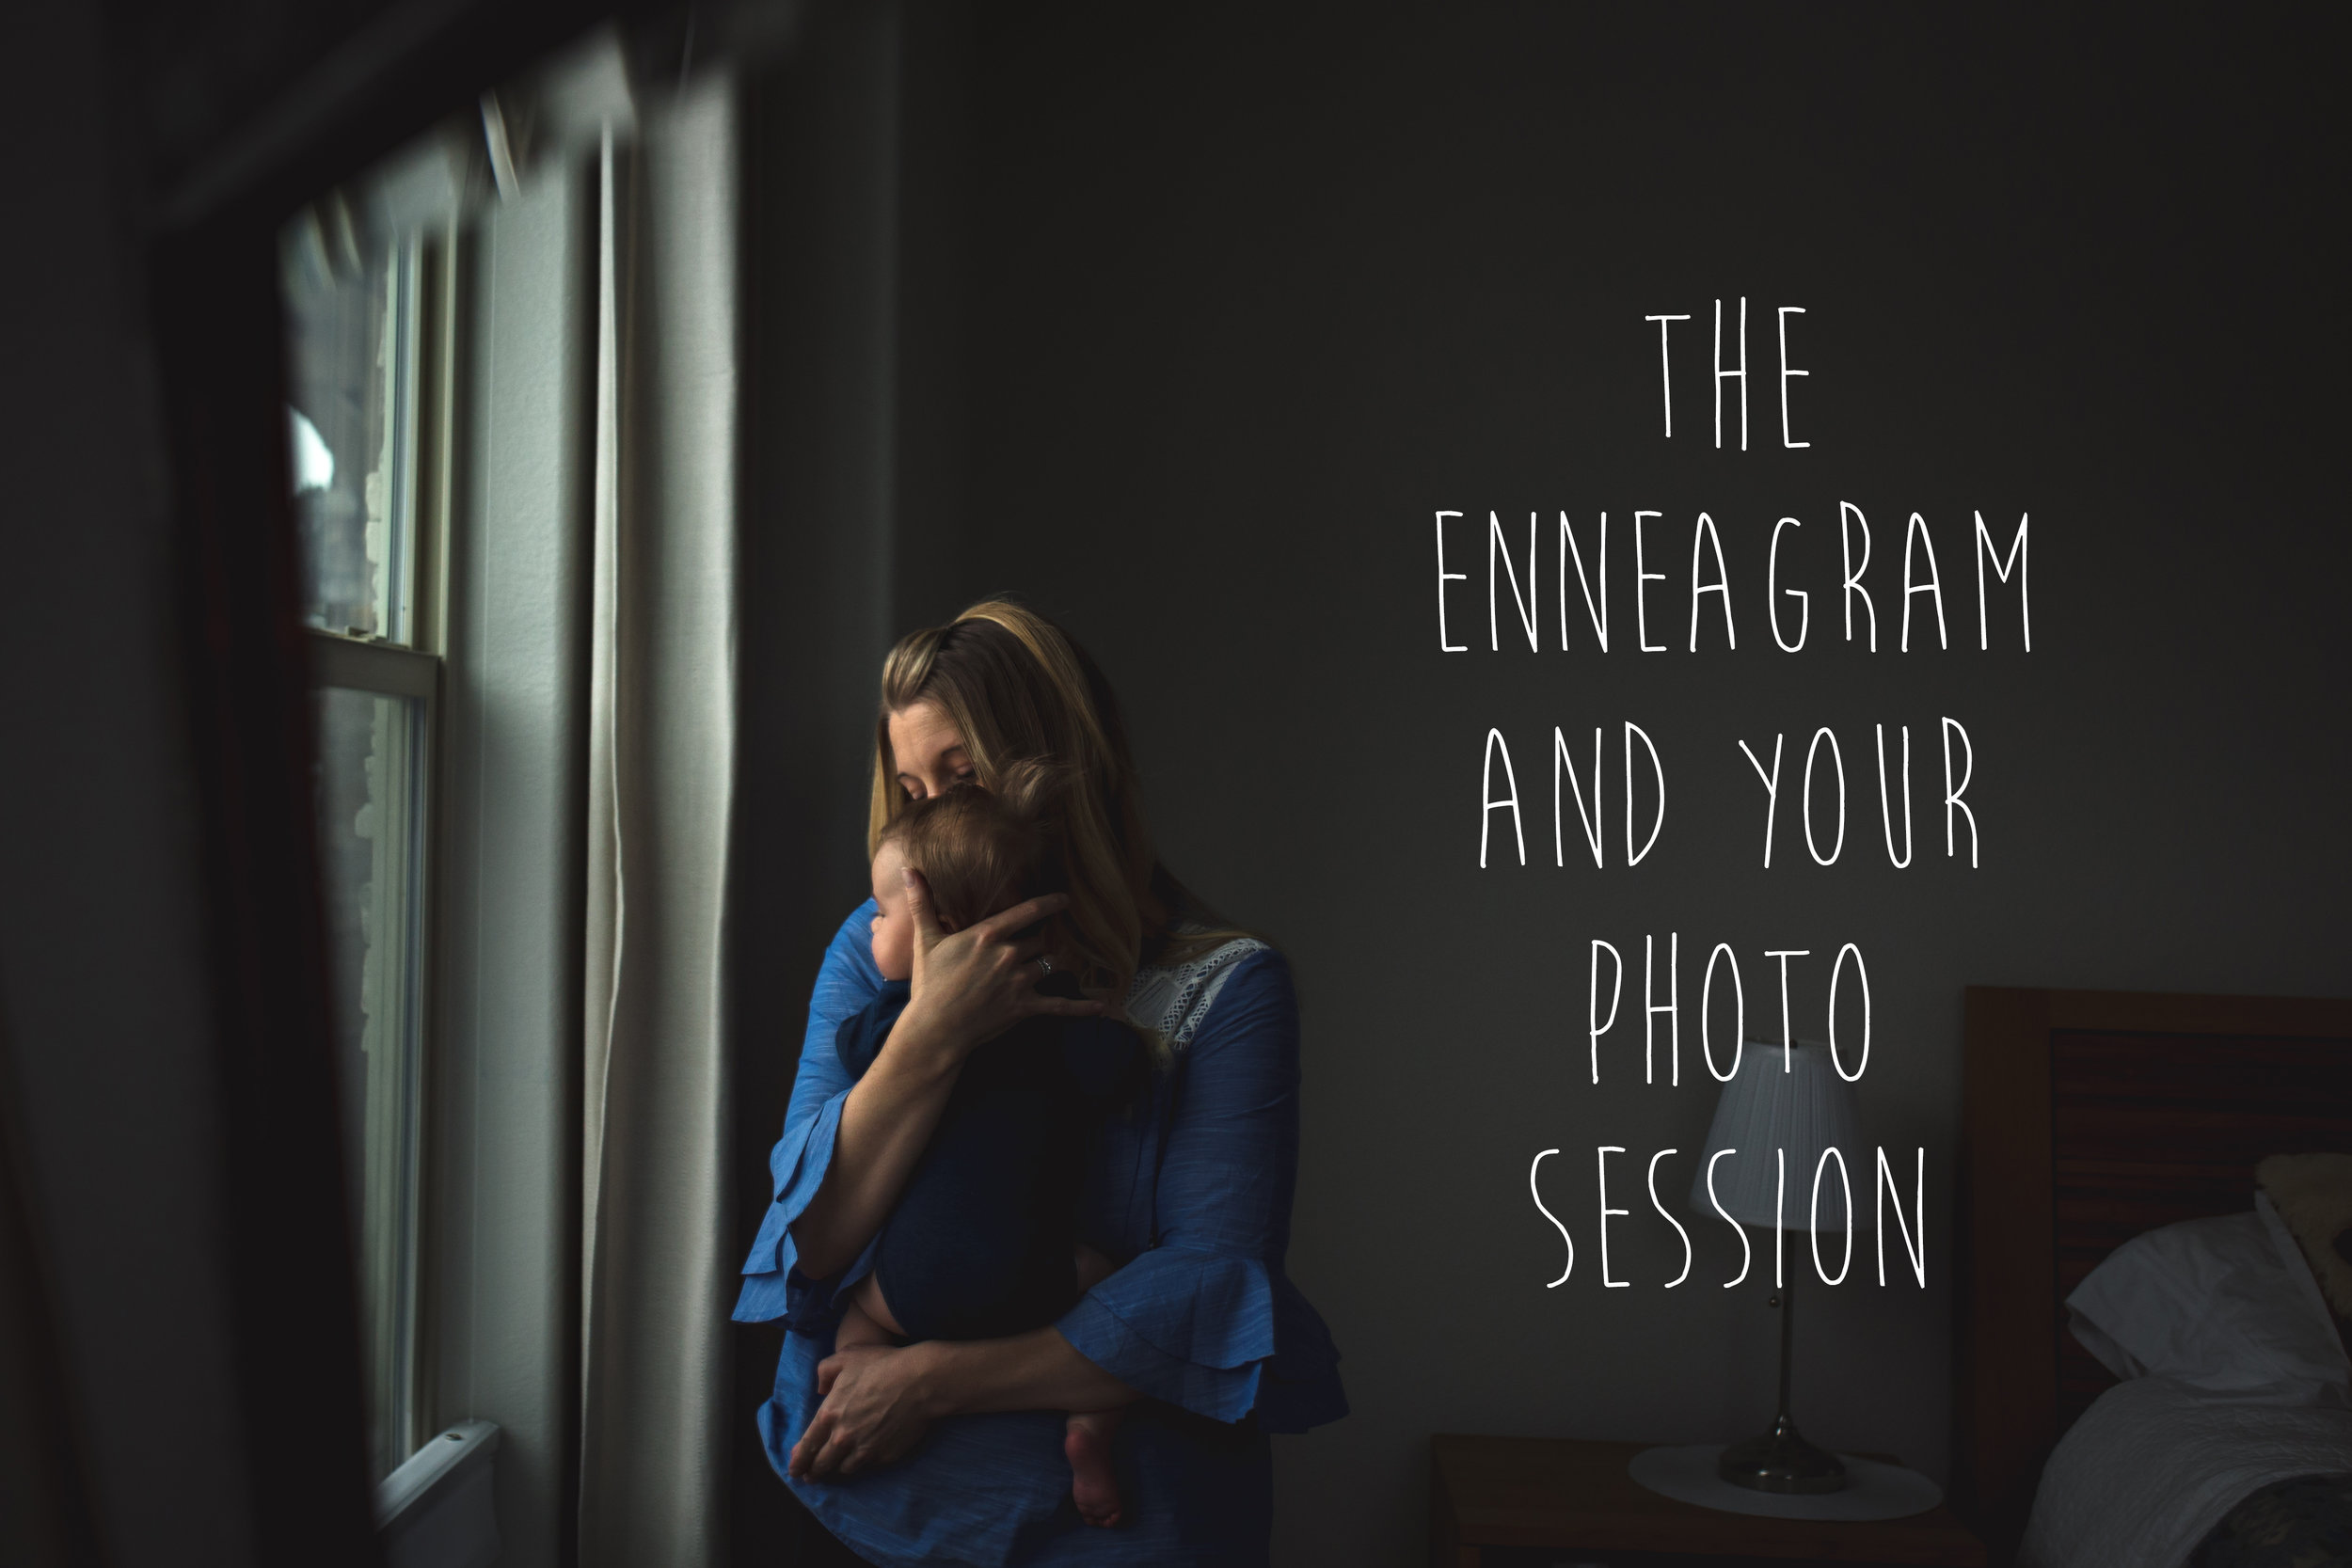 enneagram personality test photography